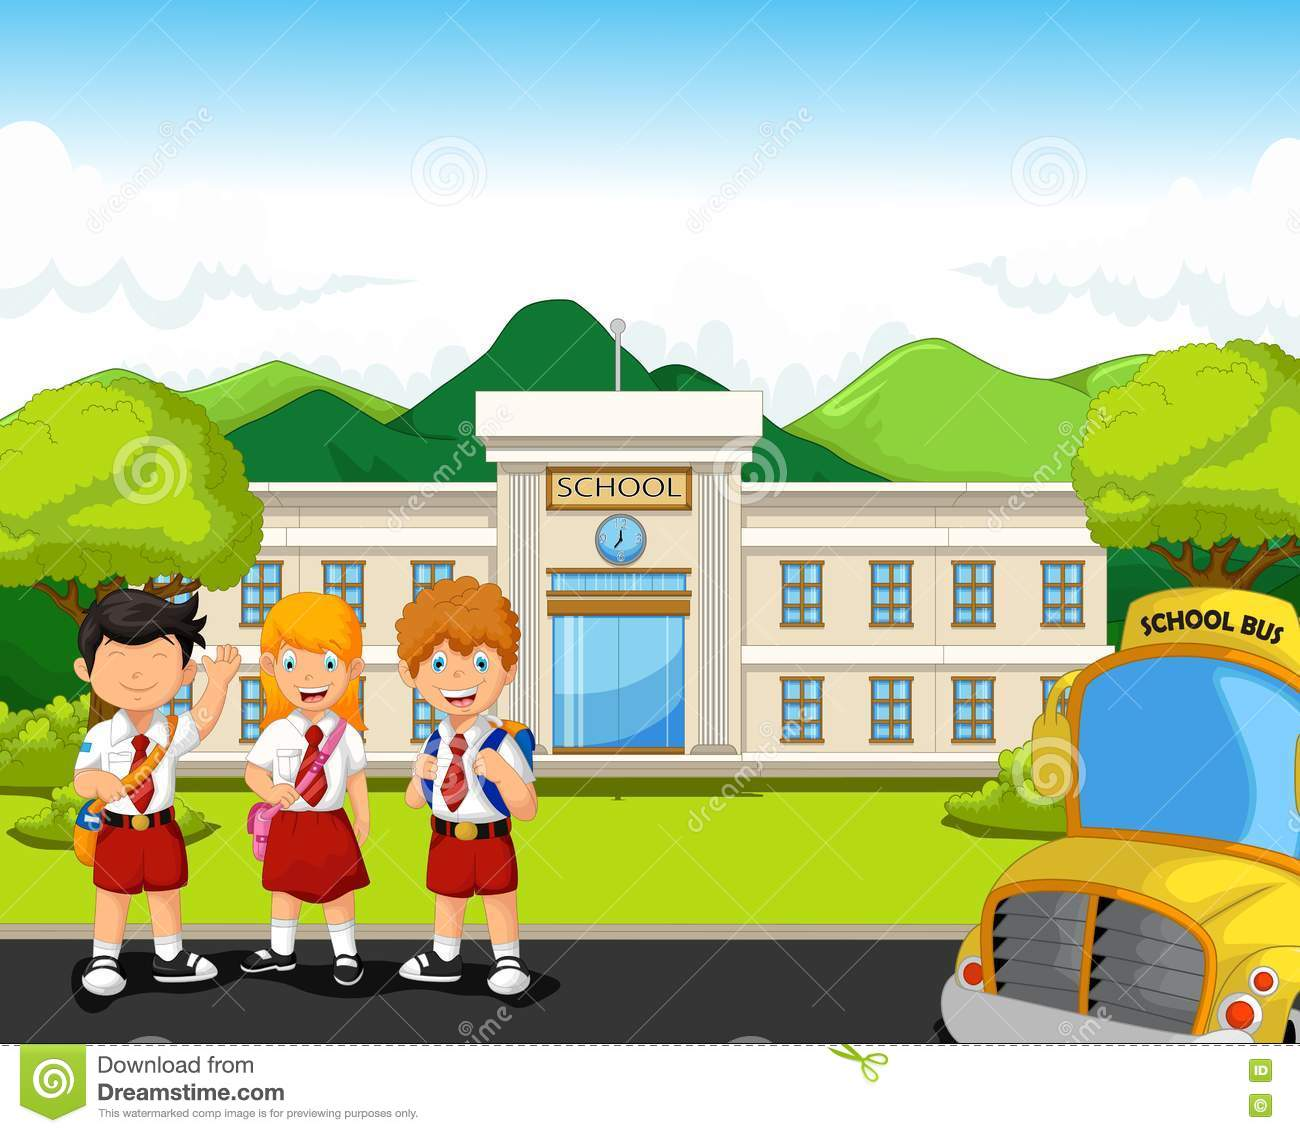 Building check all. Background clipart school